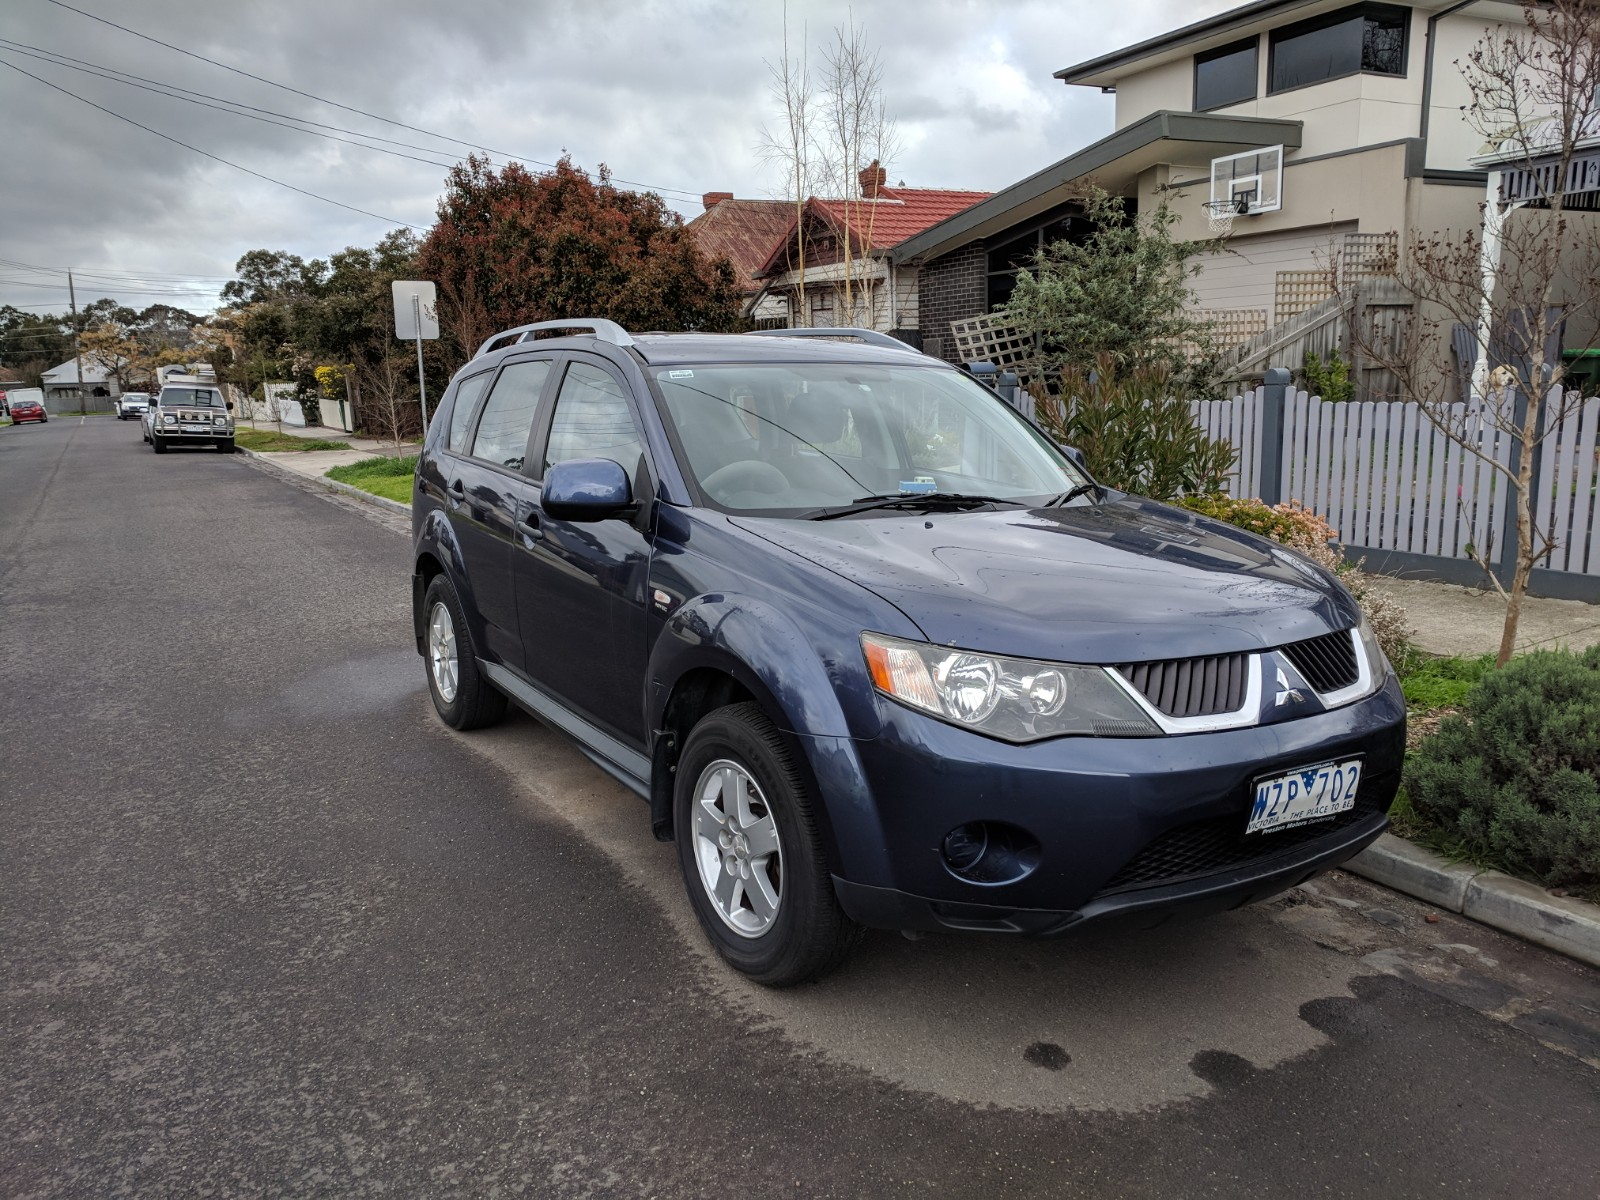 Picture of Amir's 2009 Mitsubishi Outlander